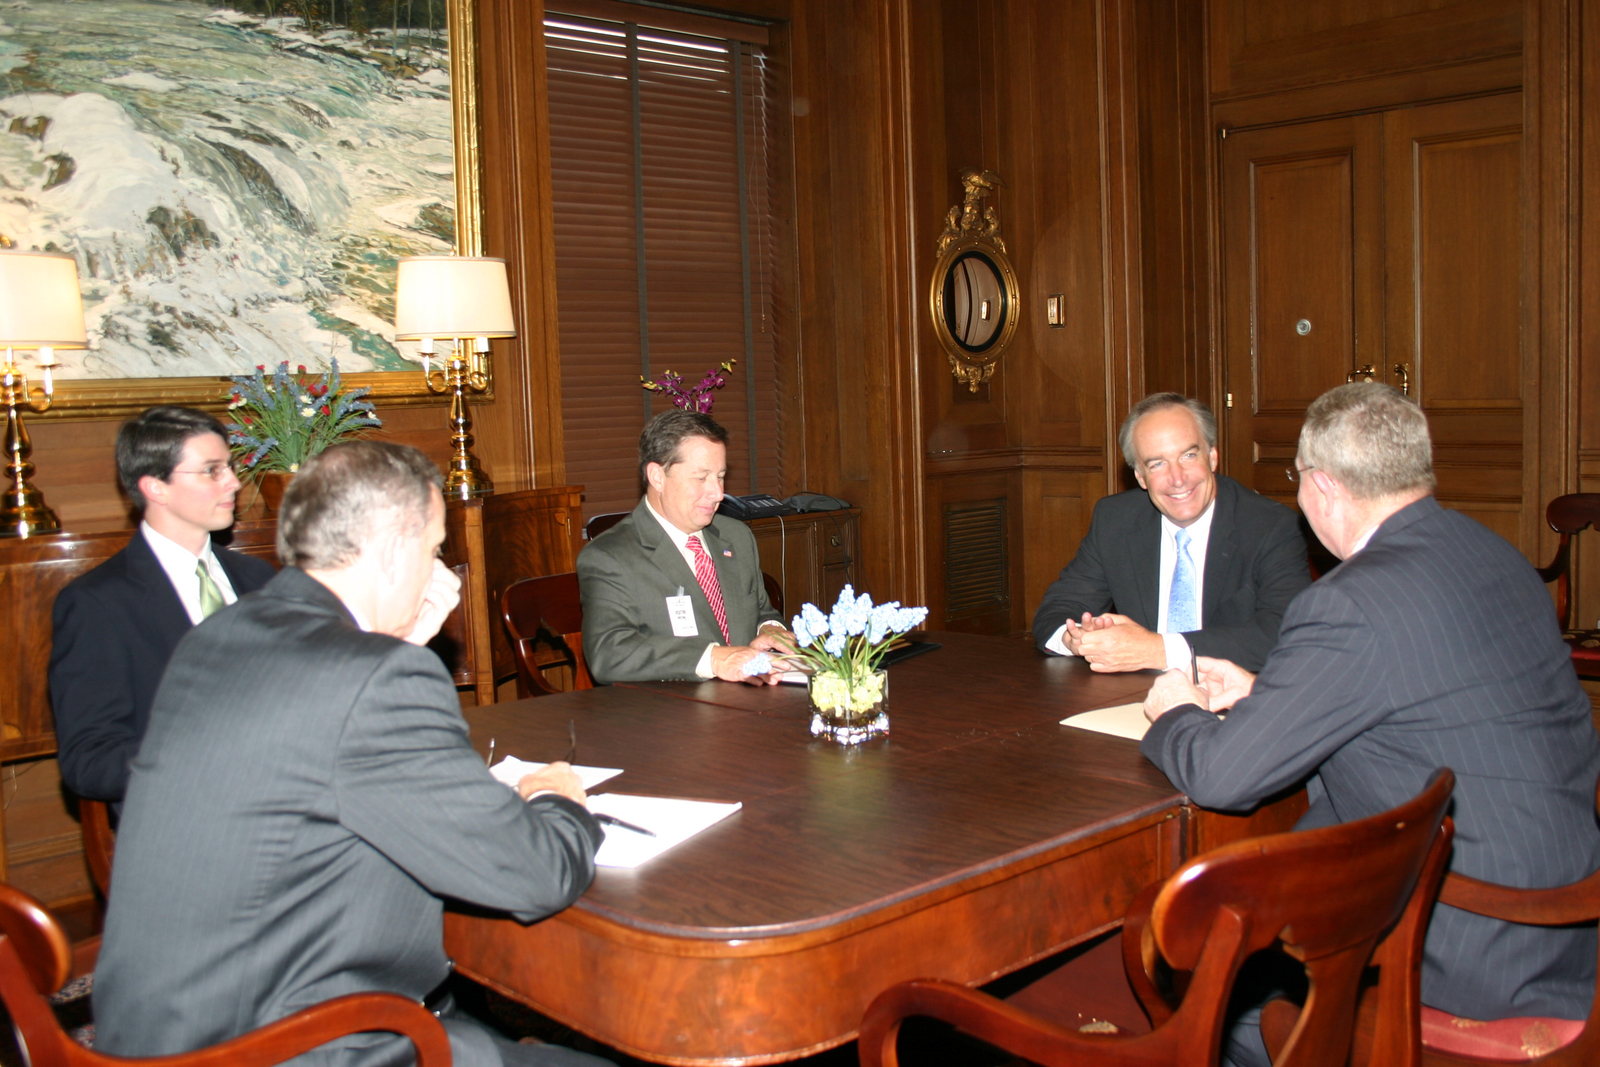 [Assignment: 48-DPA-8-3-06_SOI_K_Cavaney] Secretary Dirk Kempthorne [and aides meeting at Main Interior] with Red Cavaney, [President and Chief Executive Officer of the Americacn Petroleum Institute, and associates] [48-DPA-8-3-06_SOI_K_Cavaney_IMG_7108.JPG]